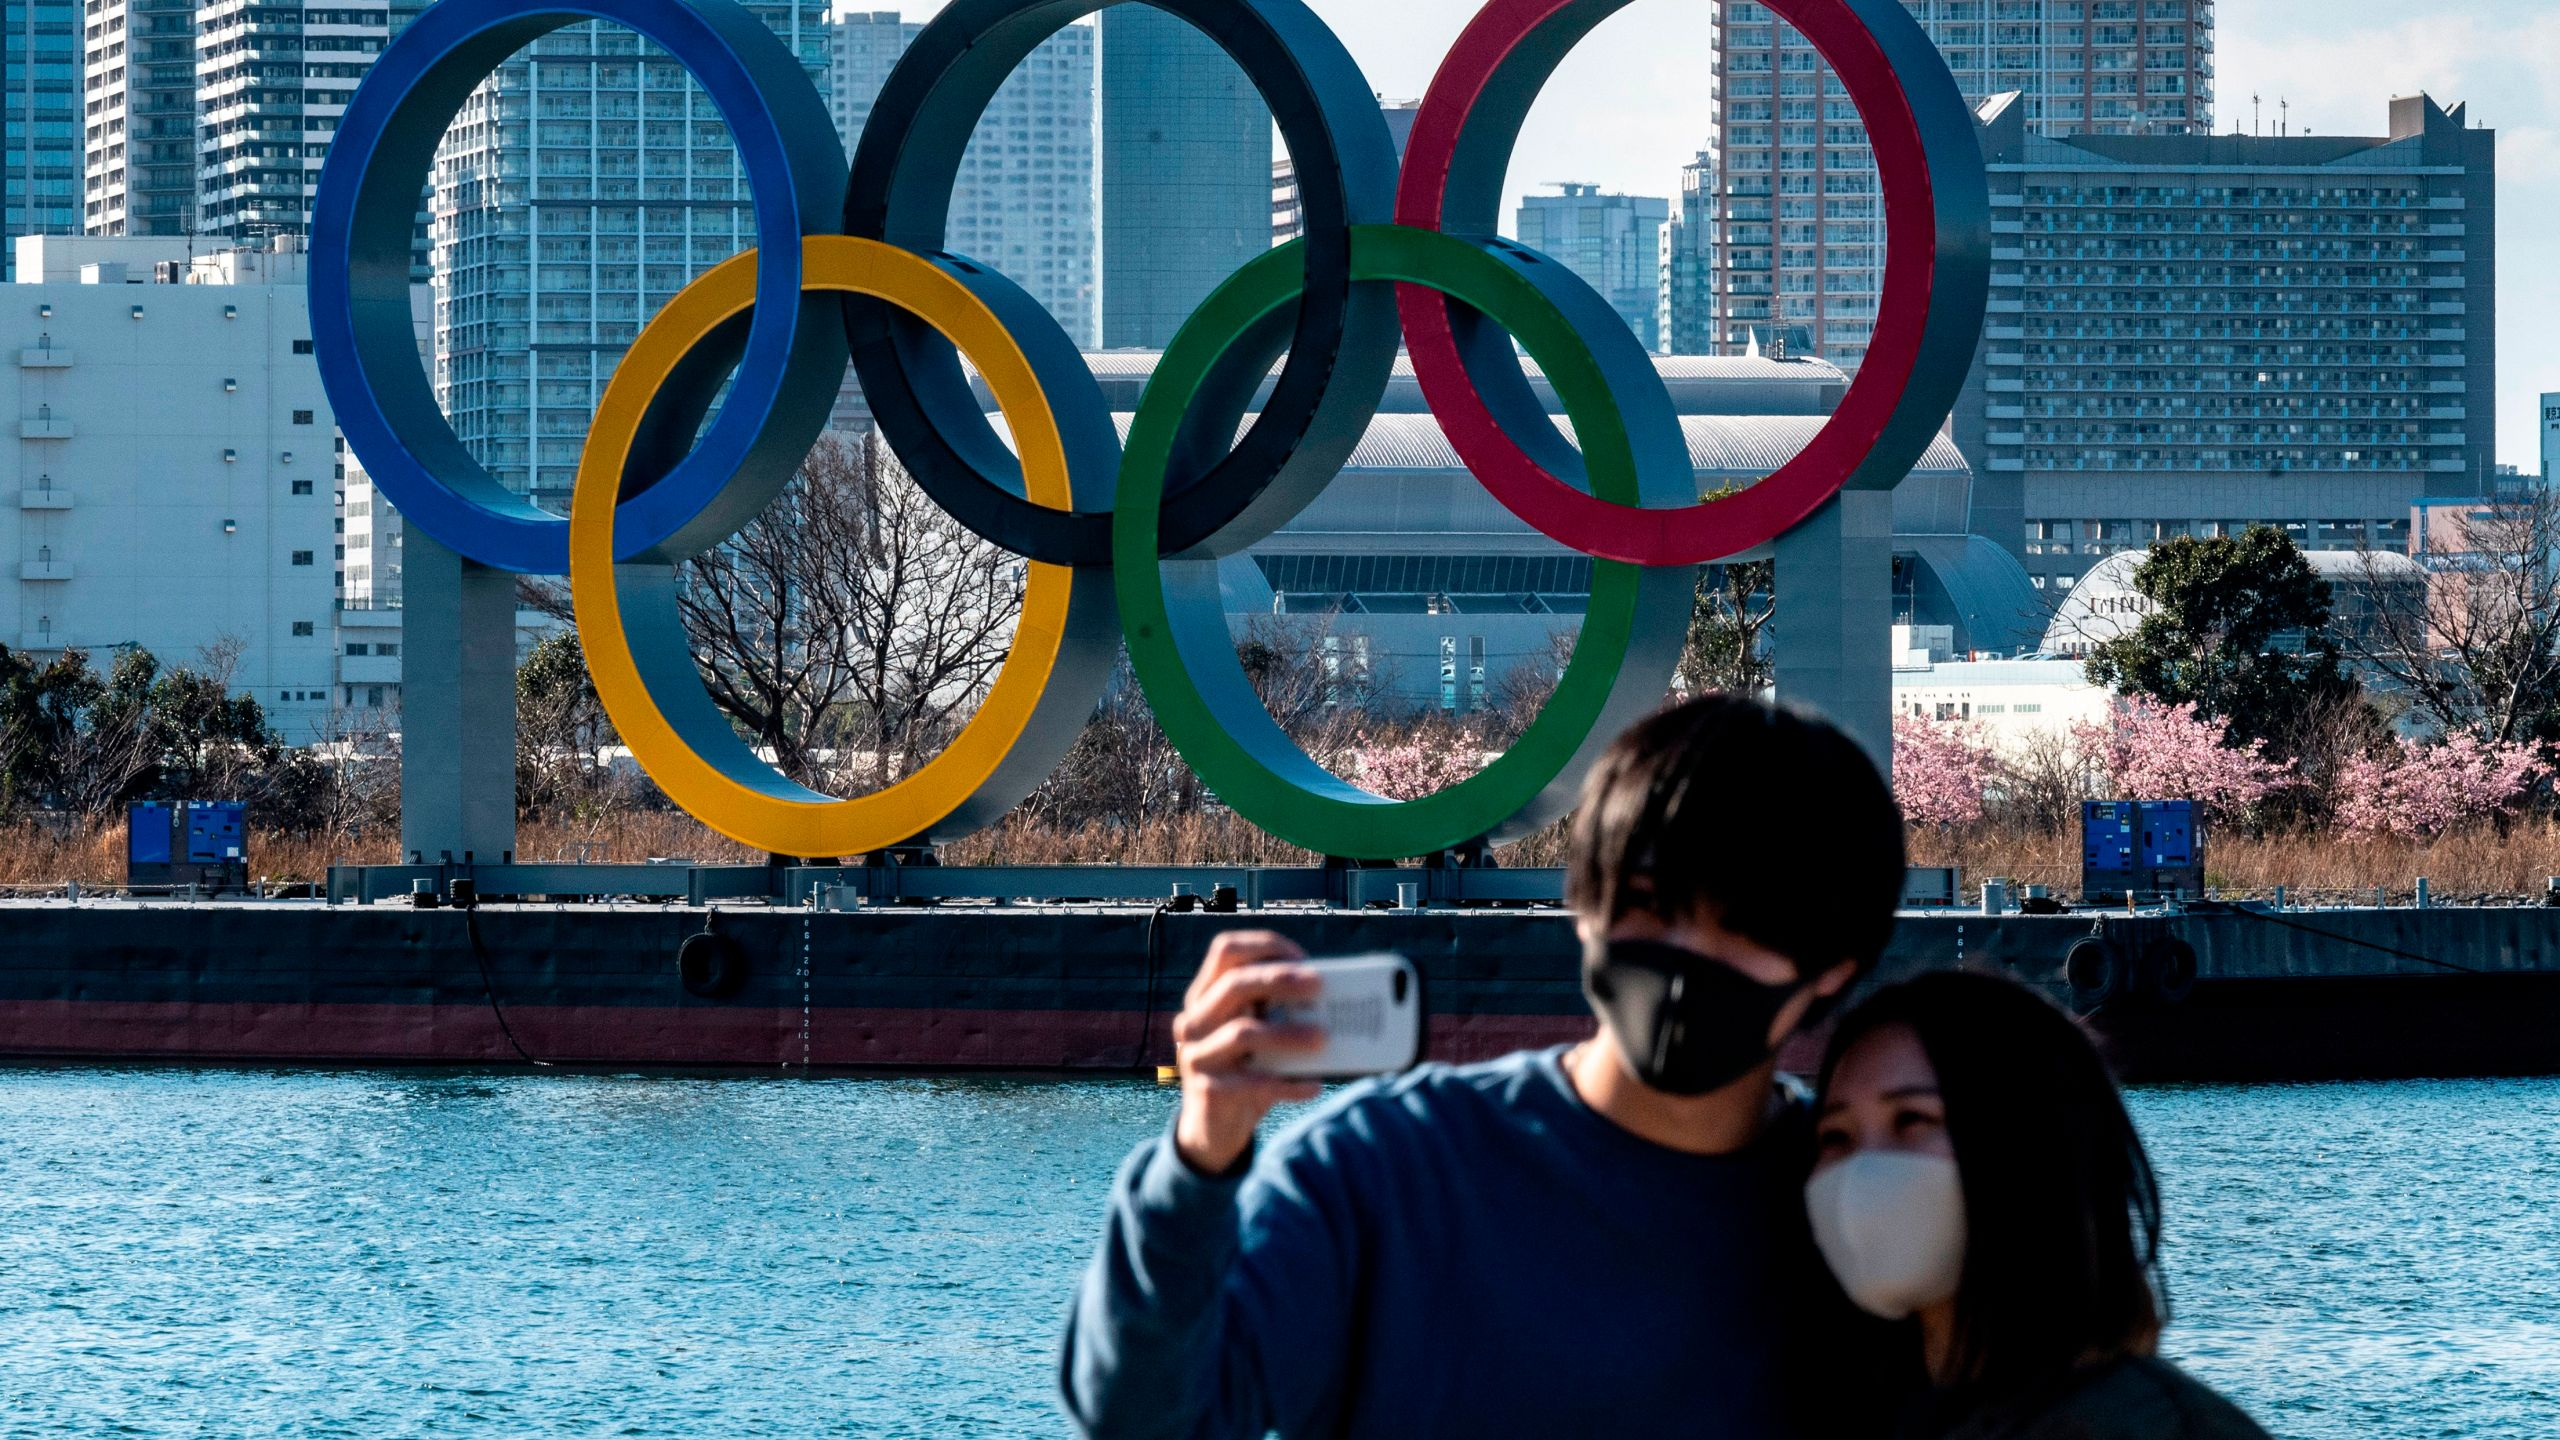 A couple pose for photos in front of the Olympic rings on display at the Odaiba waterfront in Tokyo on Feb. 24, 2021. (PHILIP FONG/AFP via Getty Images)